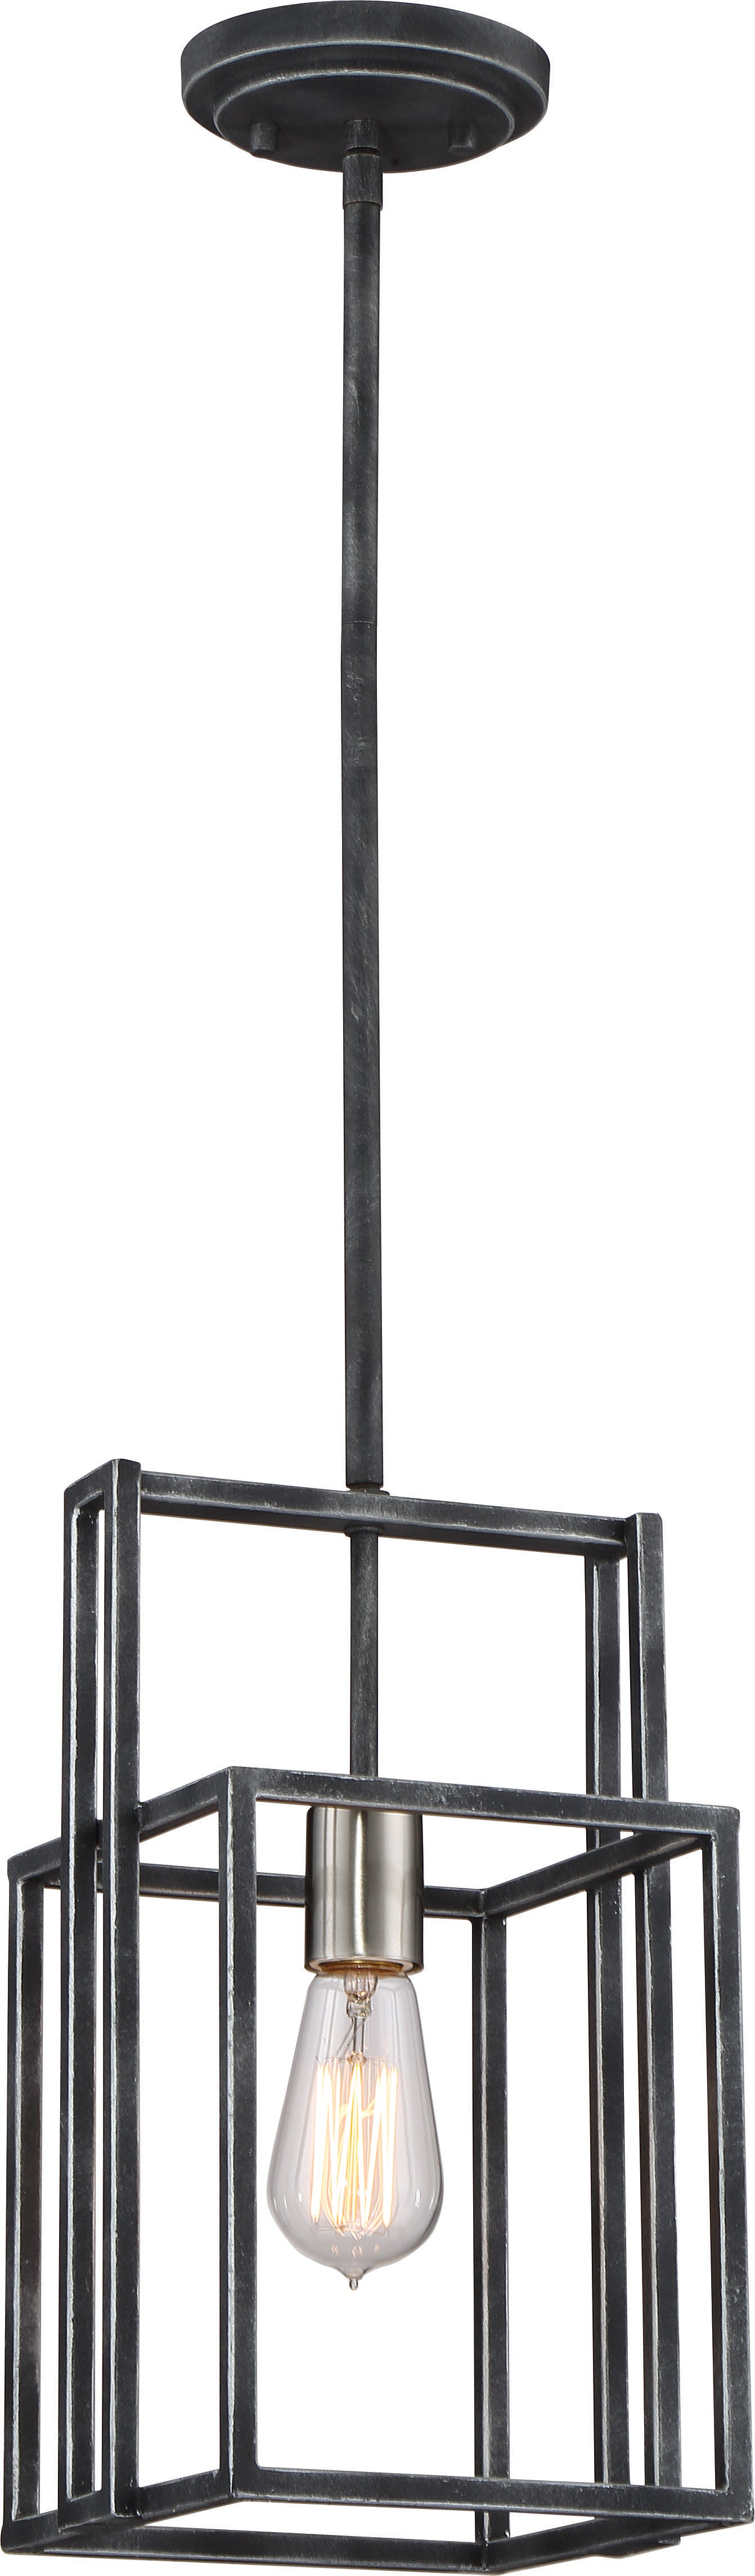 Lake 1-Light Mini-Pendant in Iron Black with Brushed Nickel Accents Finish